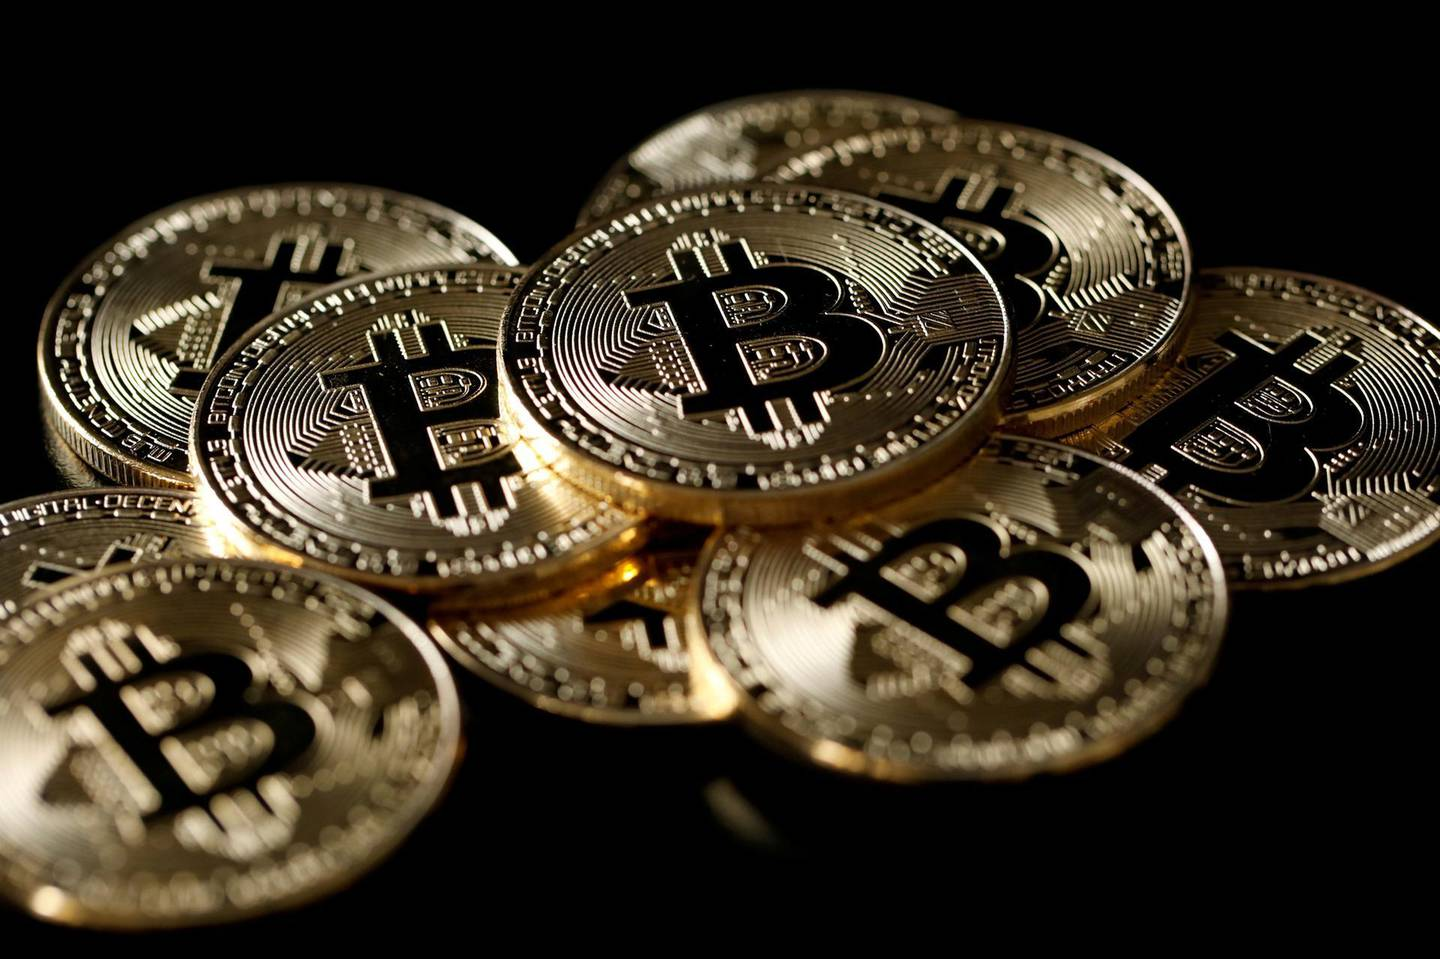 FILE PHOTO: A collection of Bitcoin (virtual currency) tokens are displayed in this picture illustration taken December 8, 2017. REUTERS/Benoit Tessier/File Photo